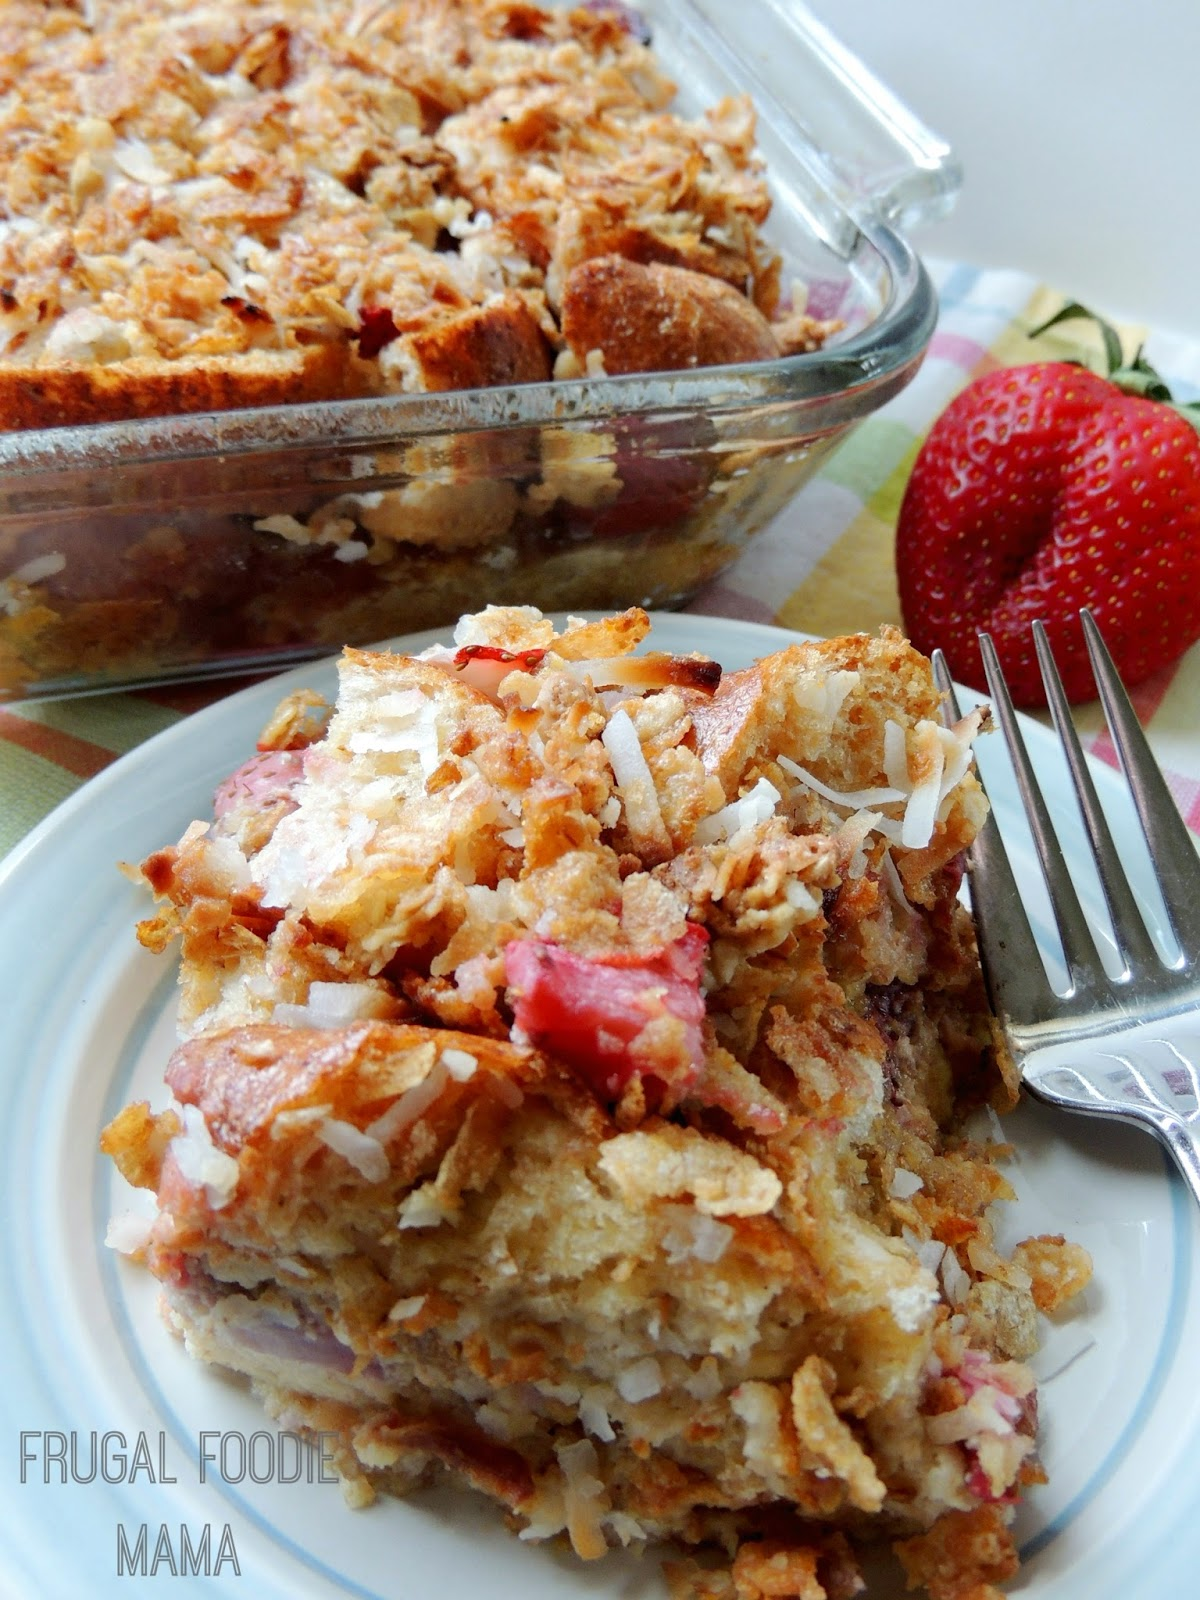 This delicious Strawberry-Coconut Crunch Layered French Toast is virtually guilt free thanks to nonfat Greek yogurt, fresh sliced strawberries, & crunchy Post Honey Bunches of Oats Greek Honey Crunch cereal.